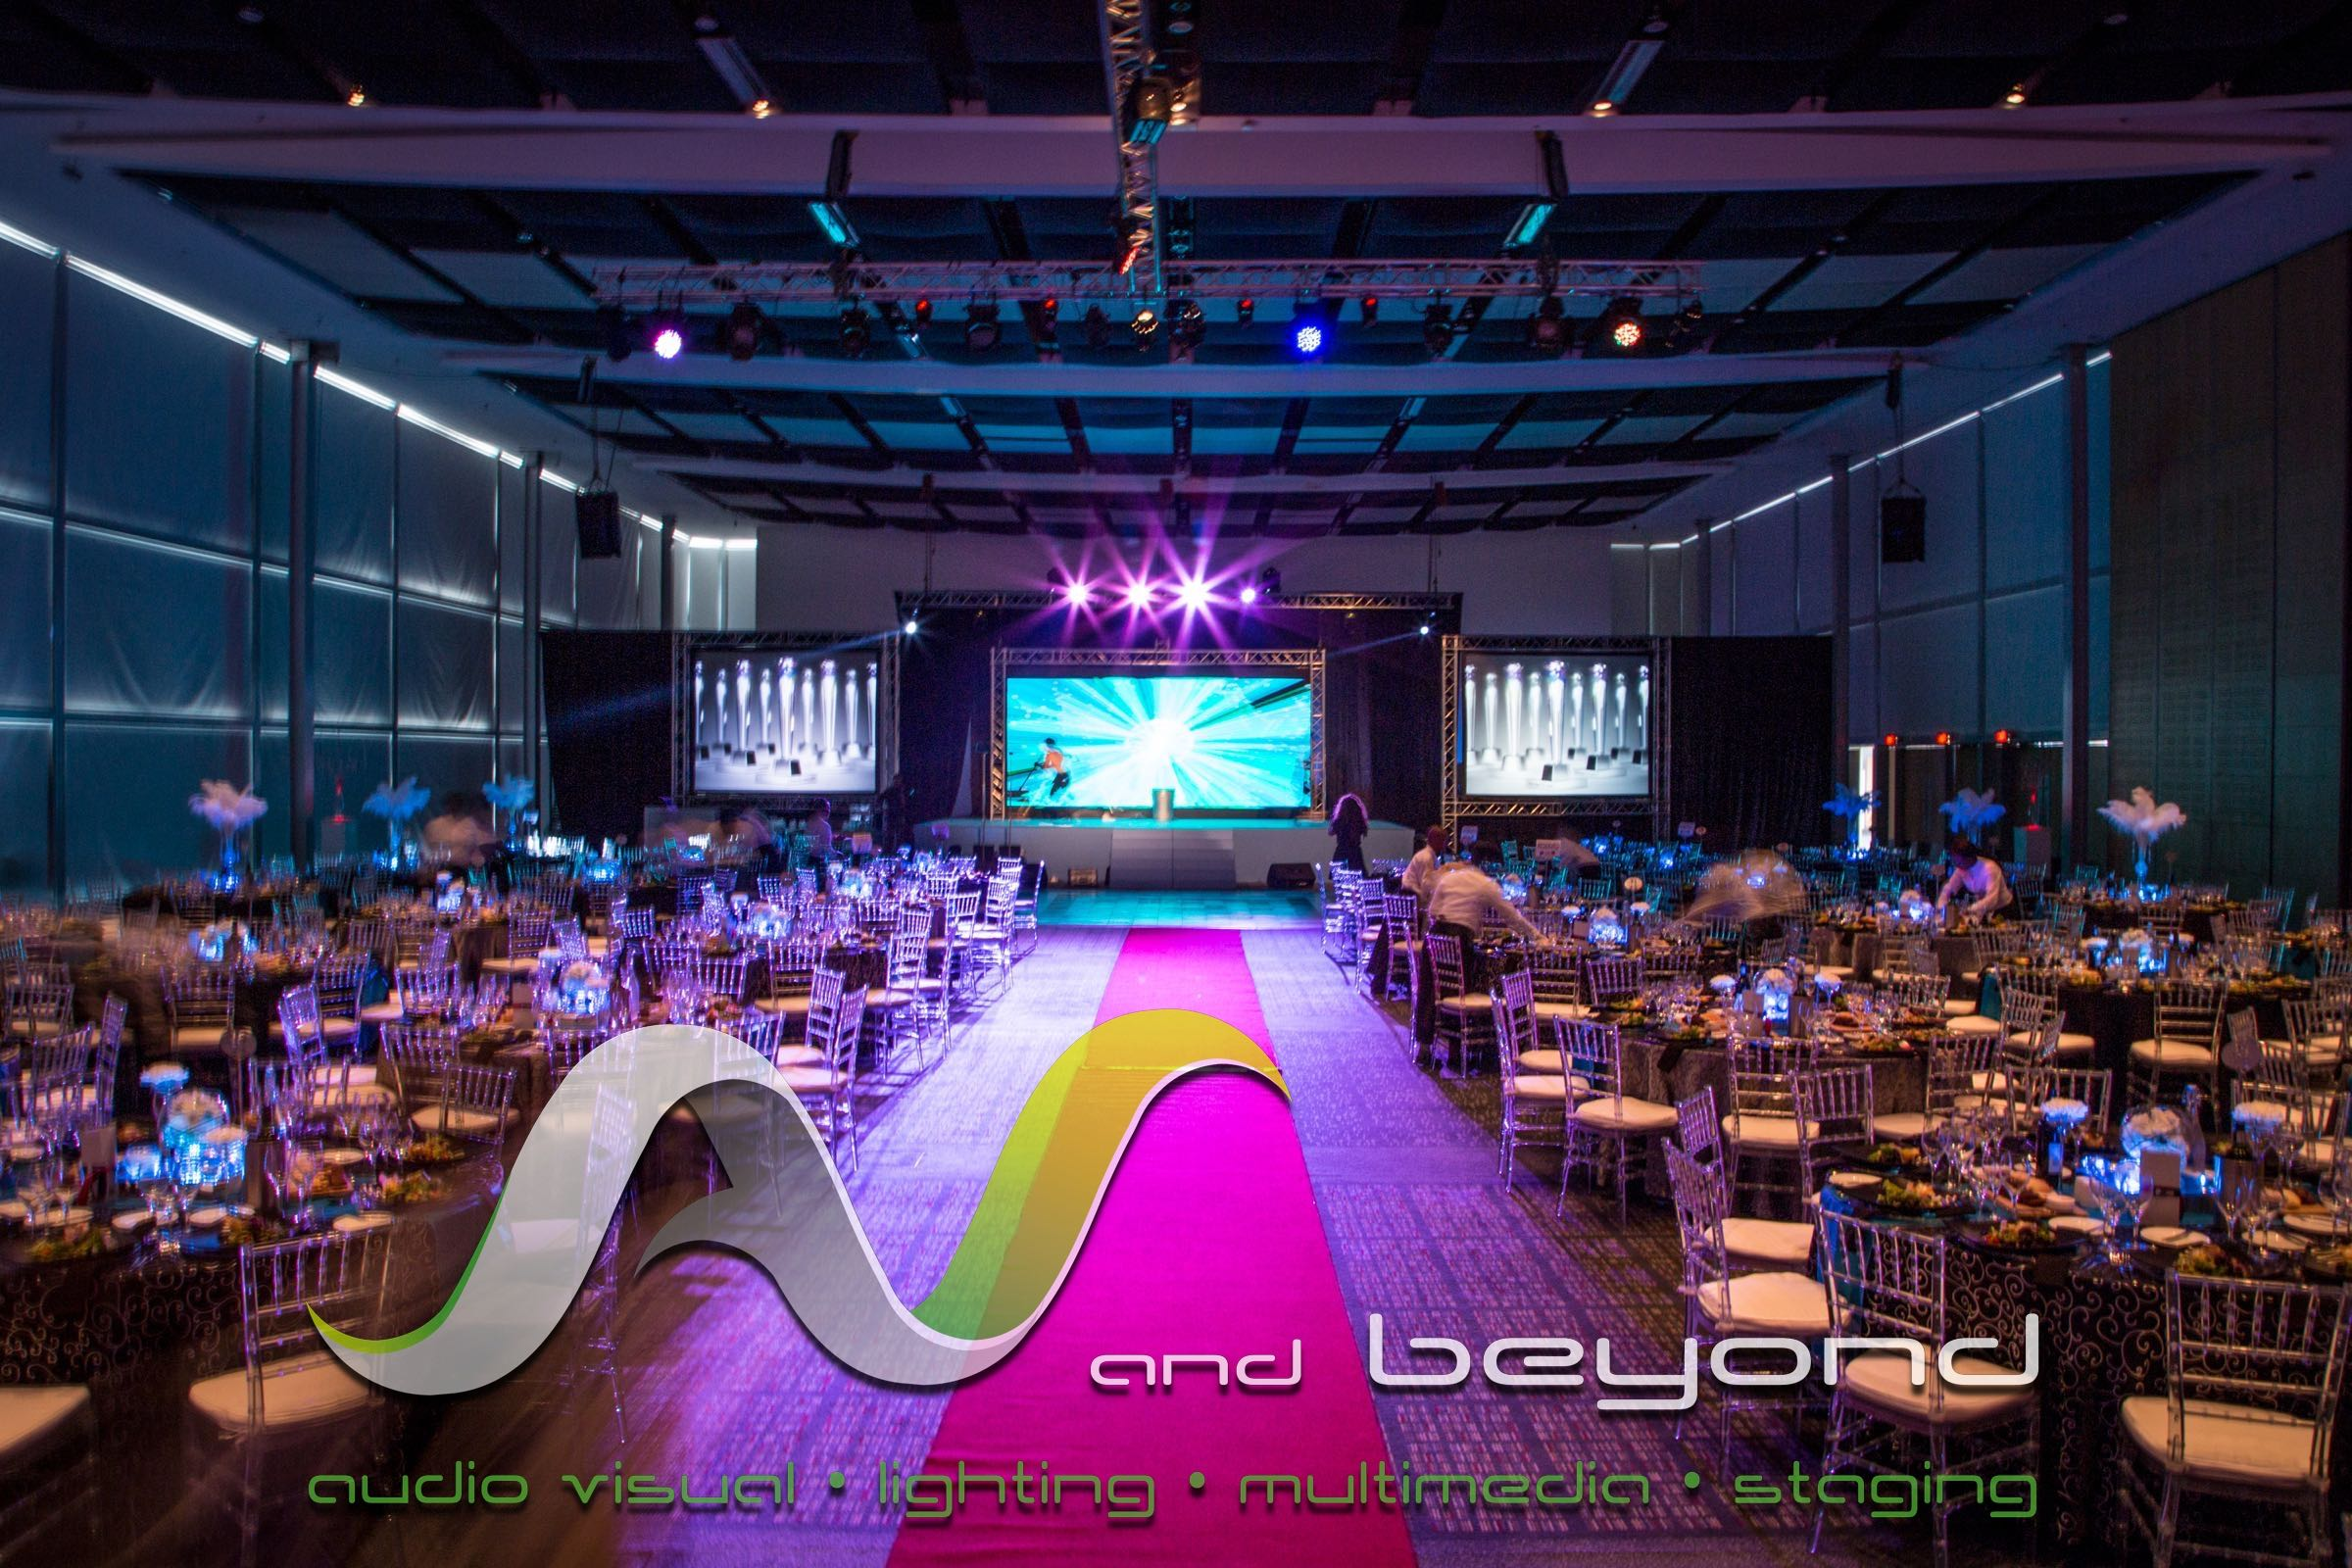 GIBB Excellence Awards 2014-141108-LRG-3.jpg